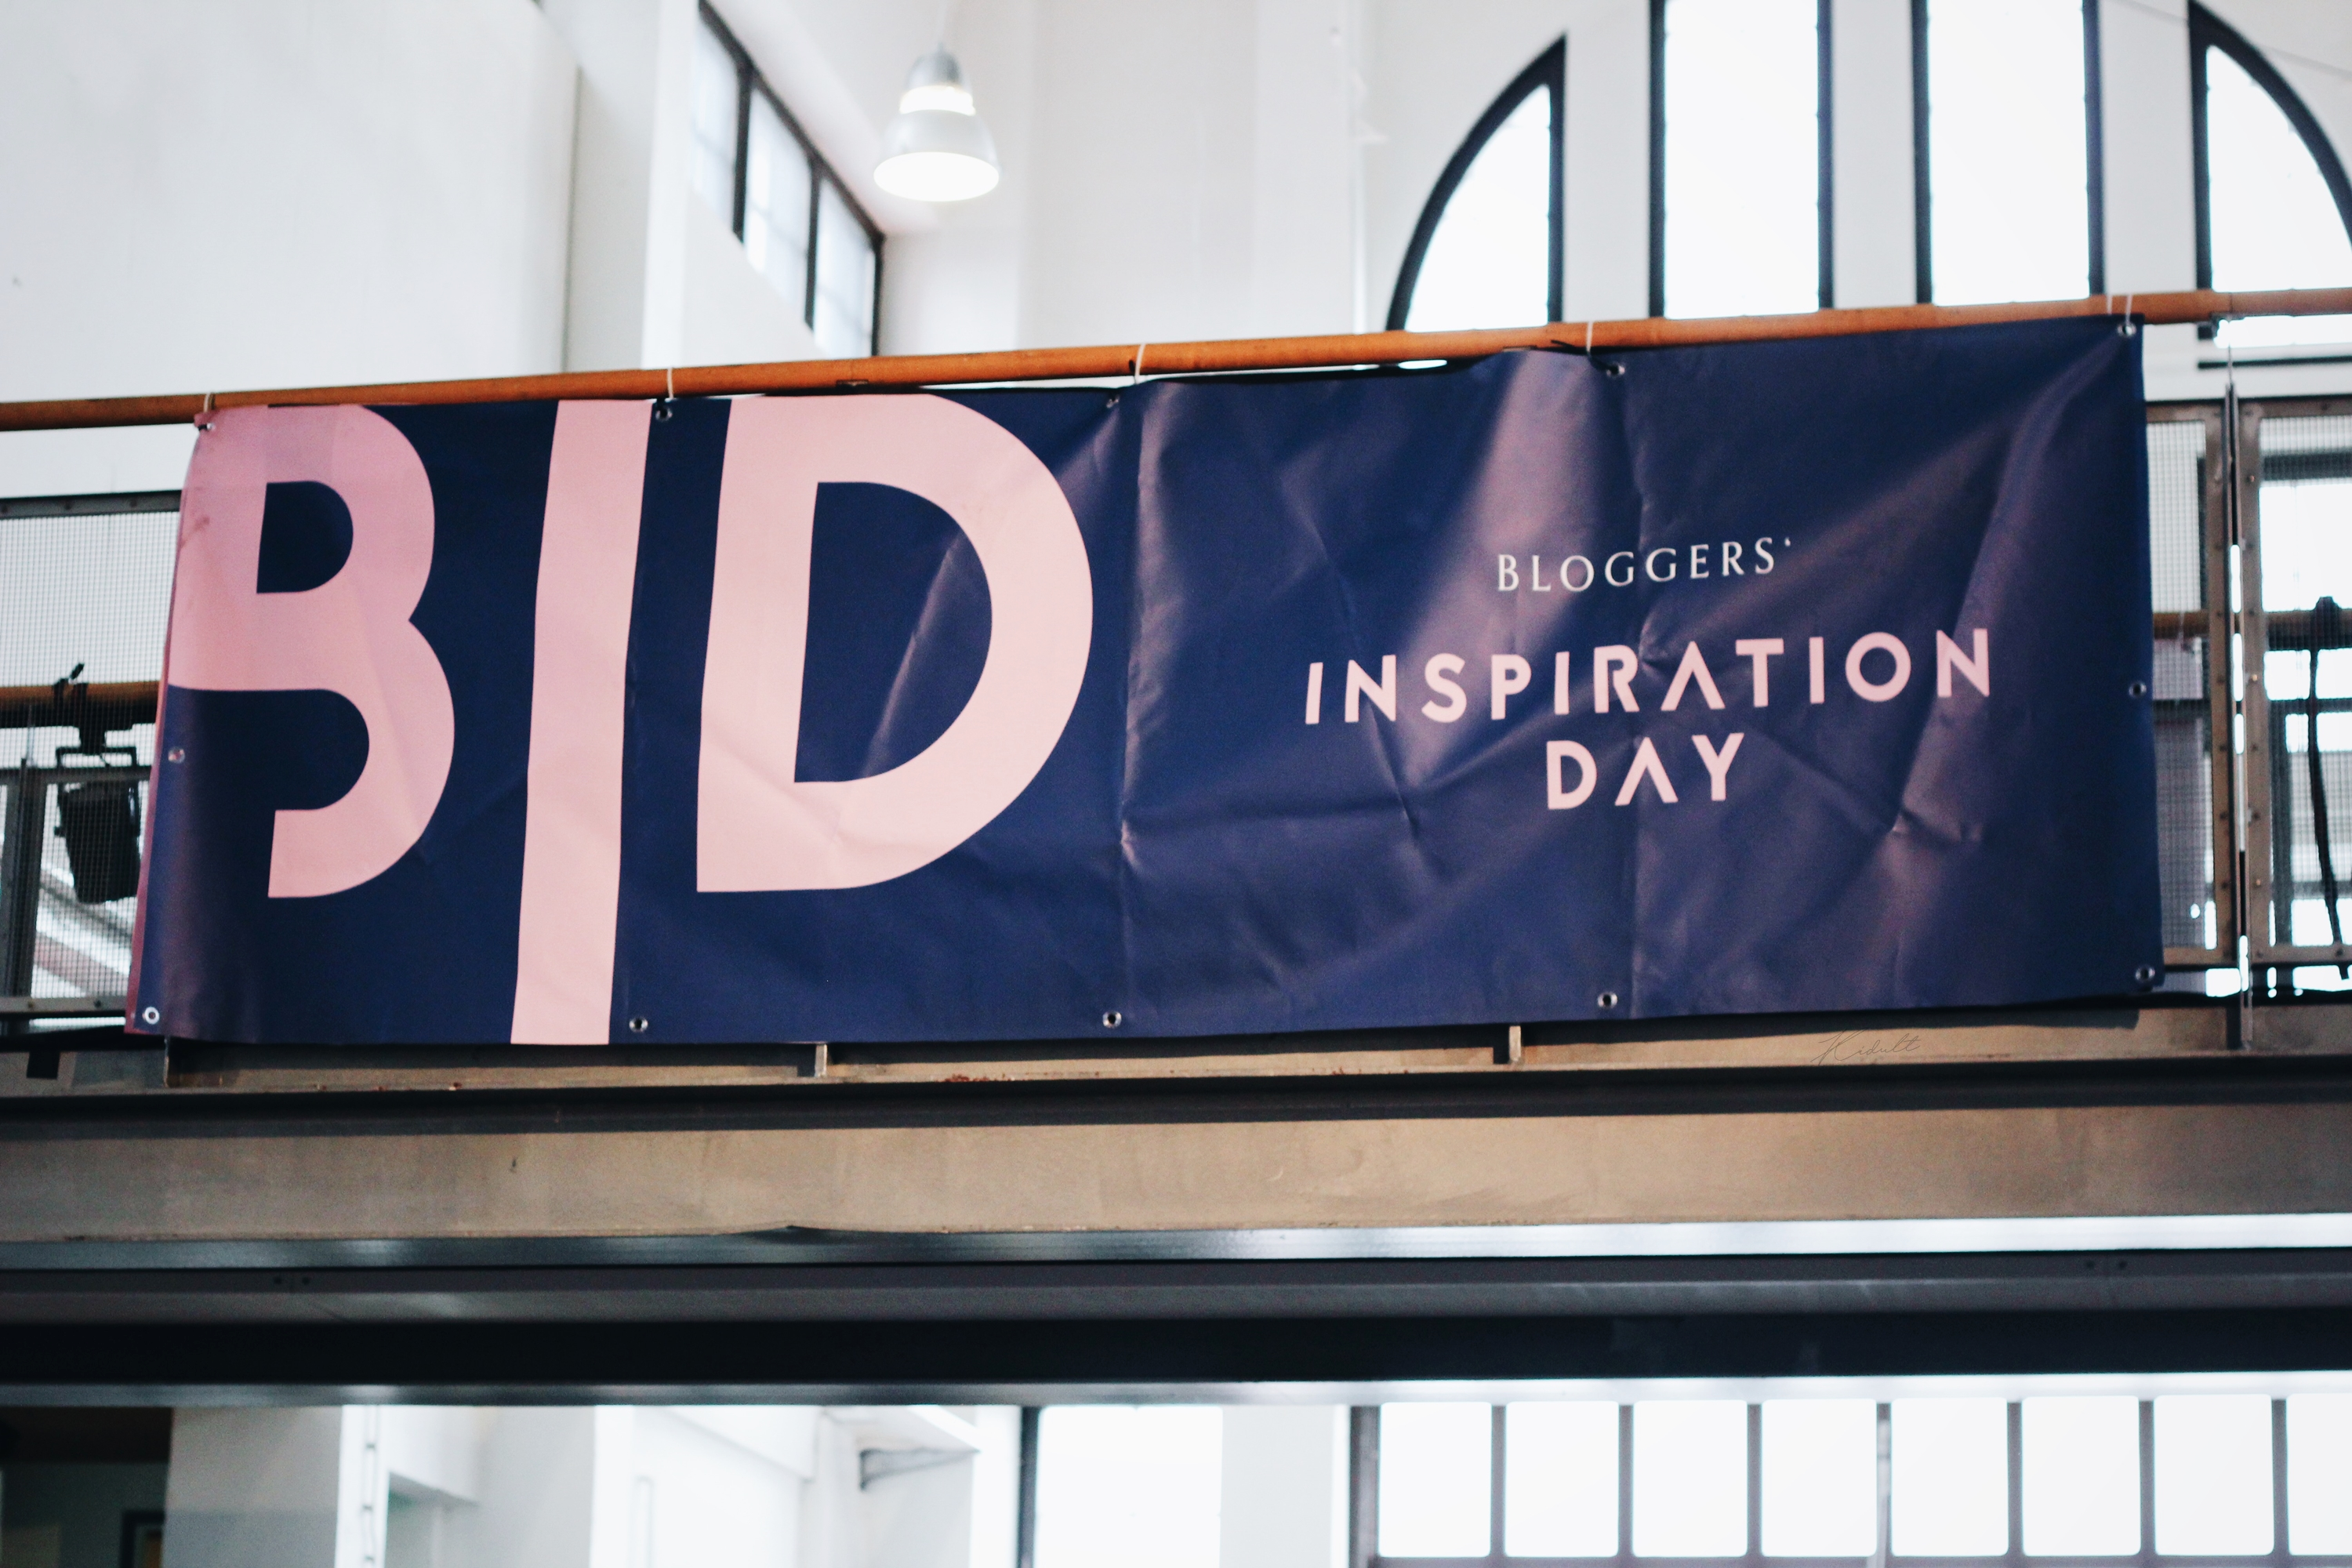 bloggers inspiration day 2017